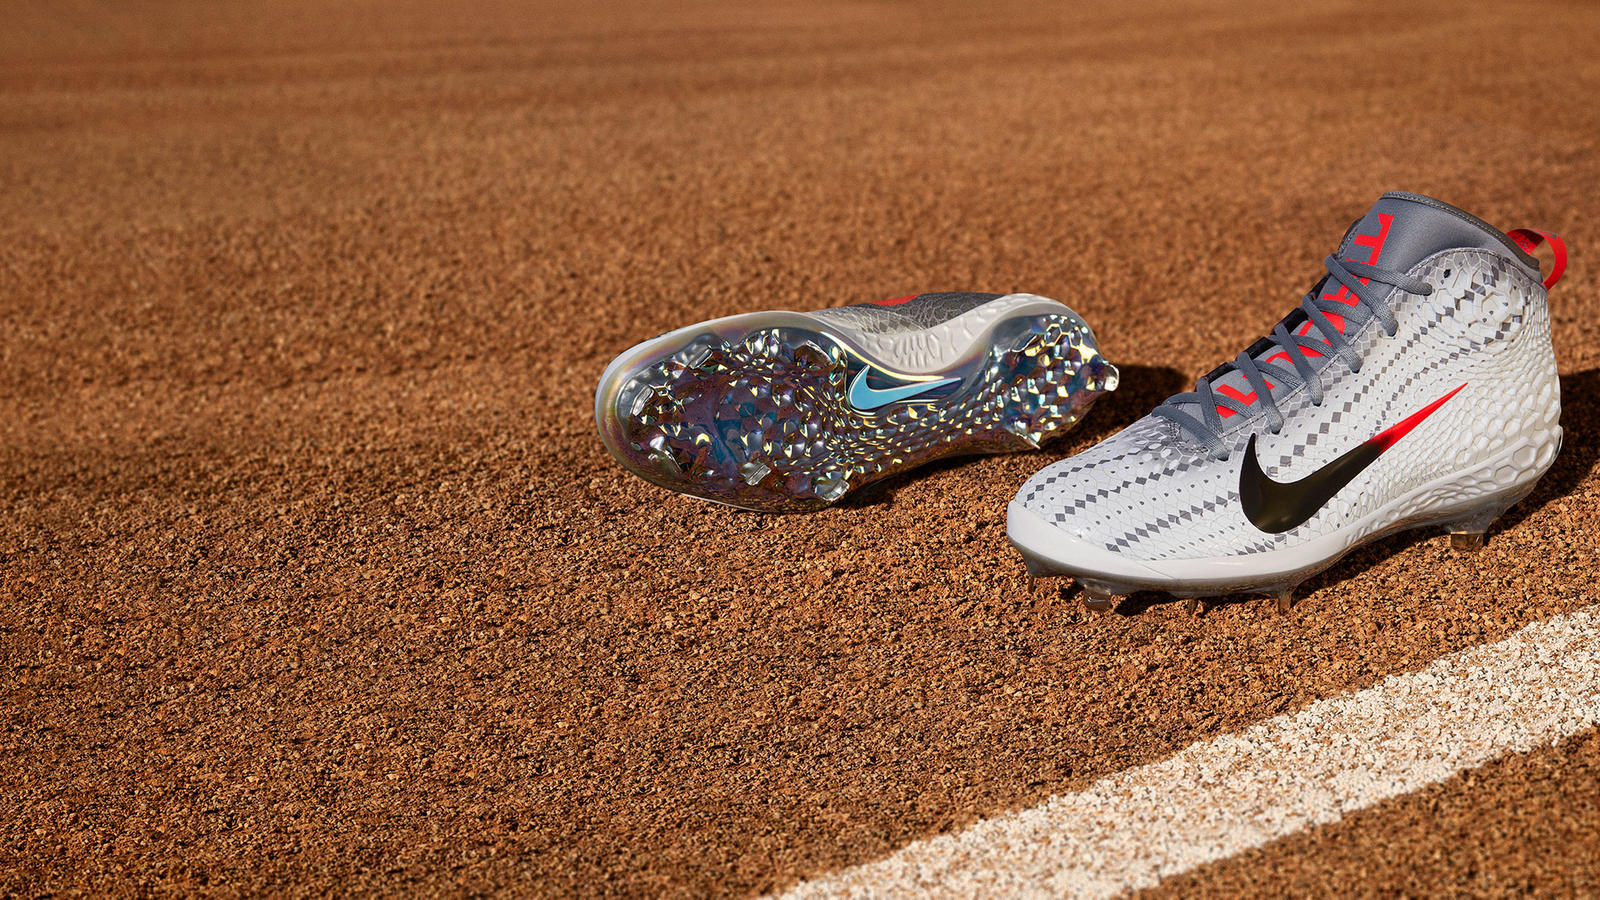 Fa18_BSBL_Trout5_NA_Cleat_01_re_hd_1600.jpg